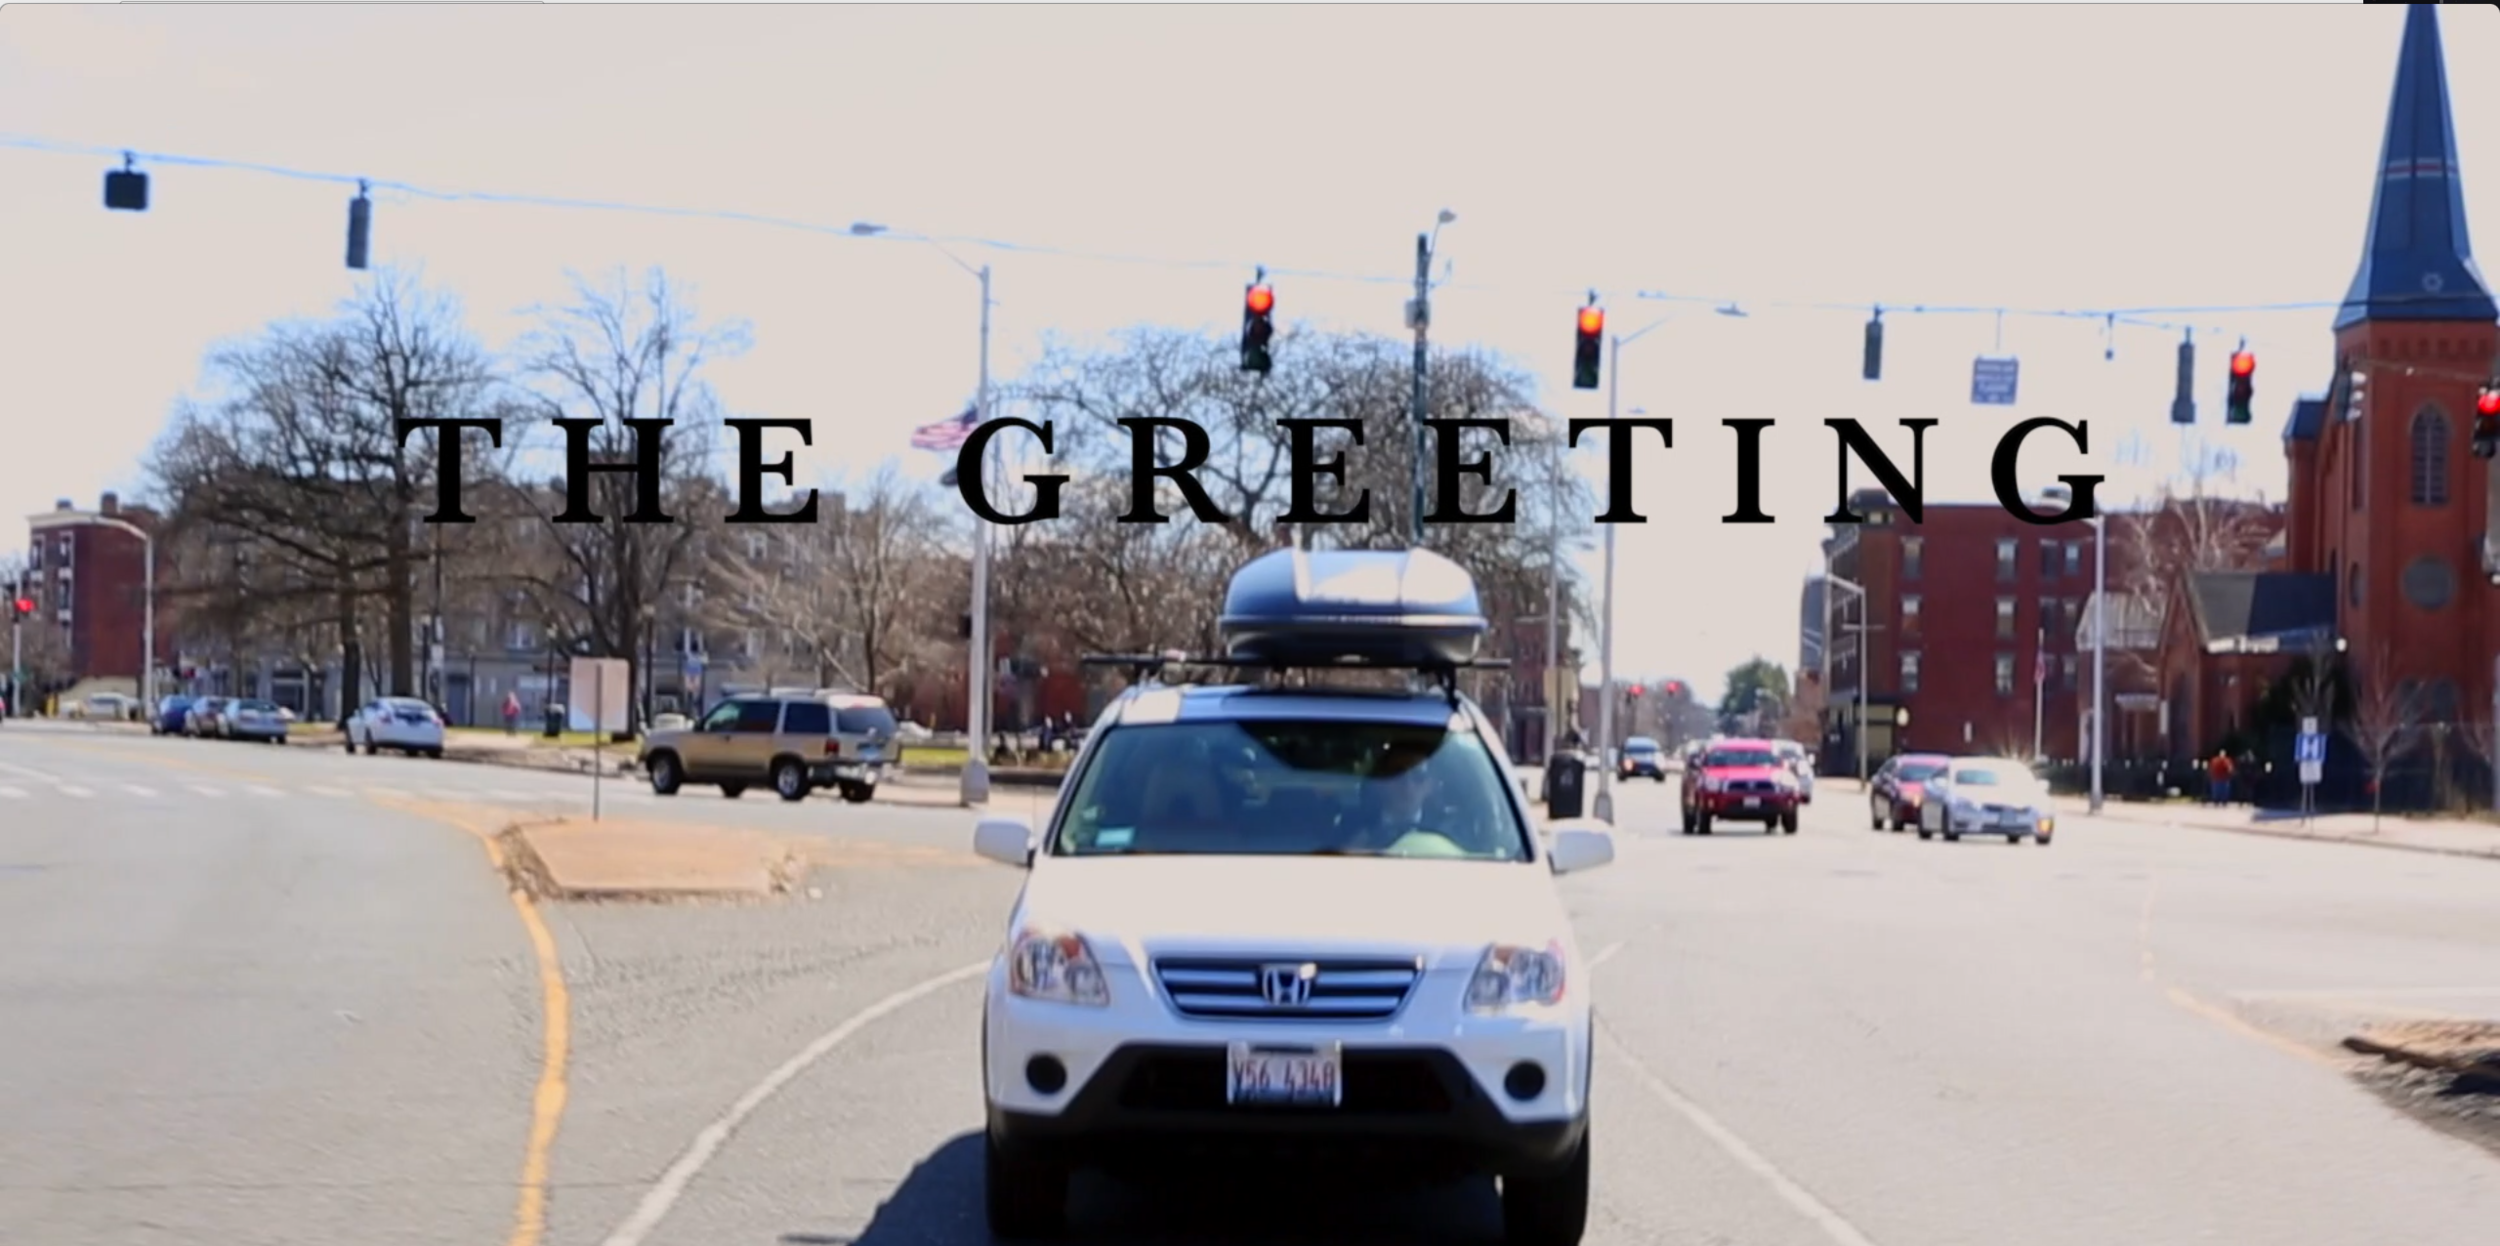 With the director in the trunk of the car in front of me, we drove around downtown Hartford for nearly two hours to complete this scene. The opening credits were shown with it.